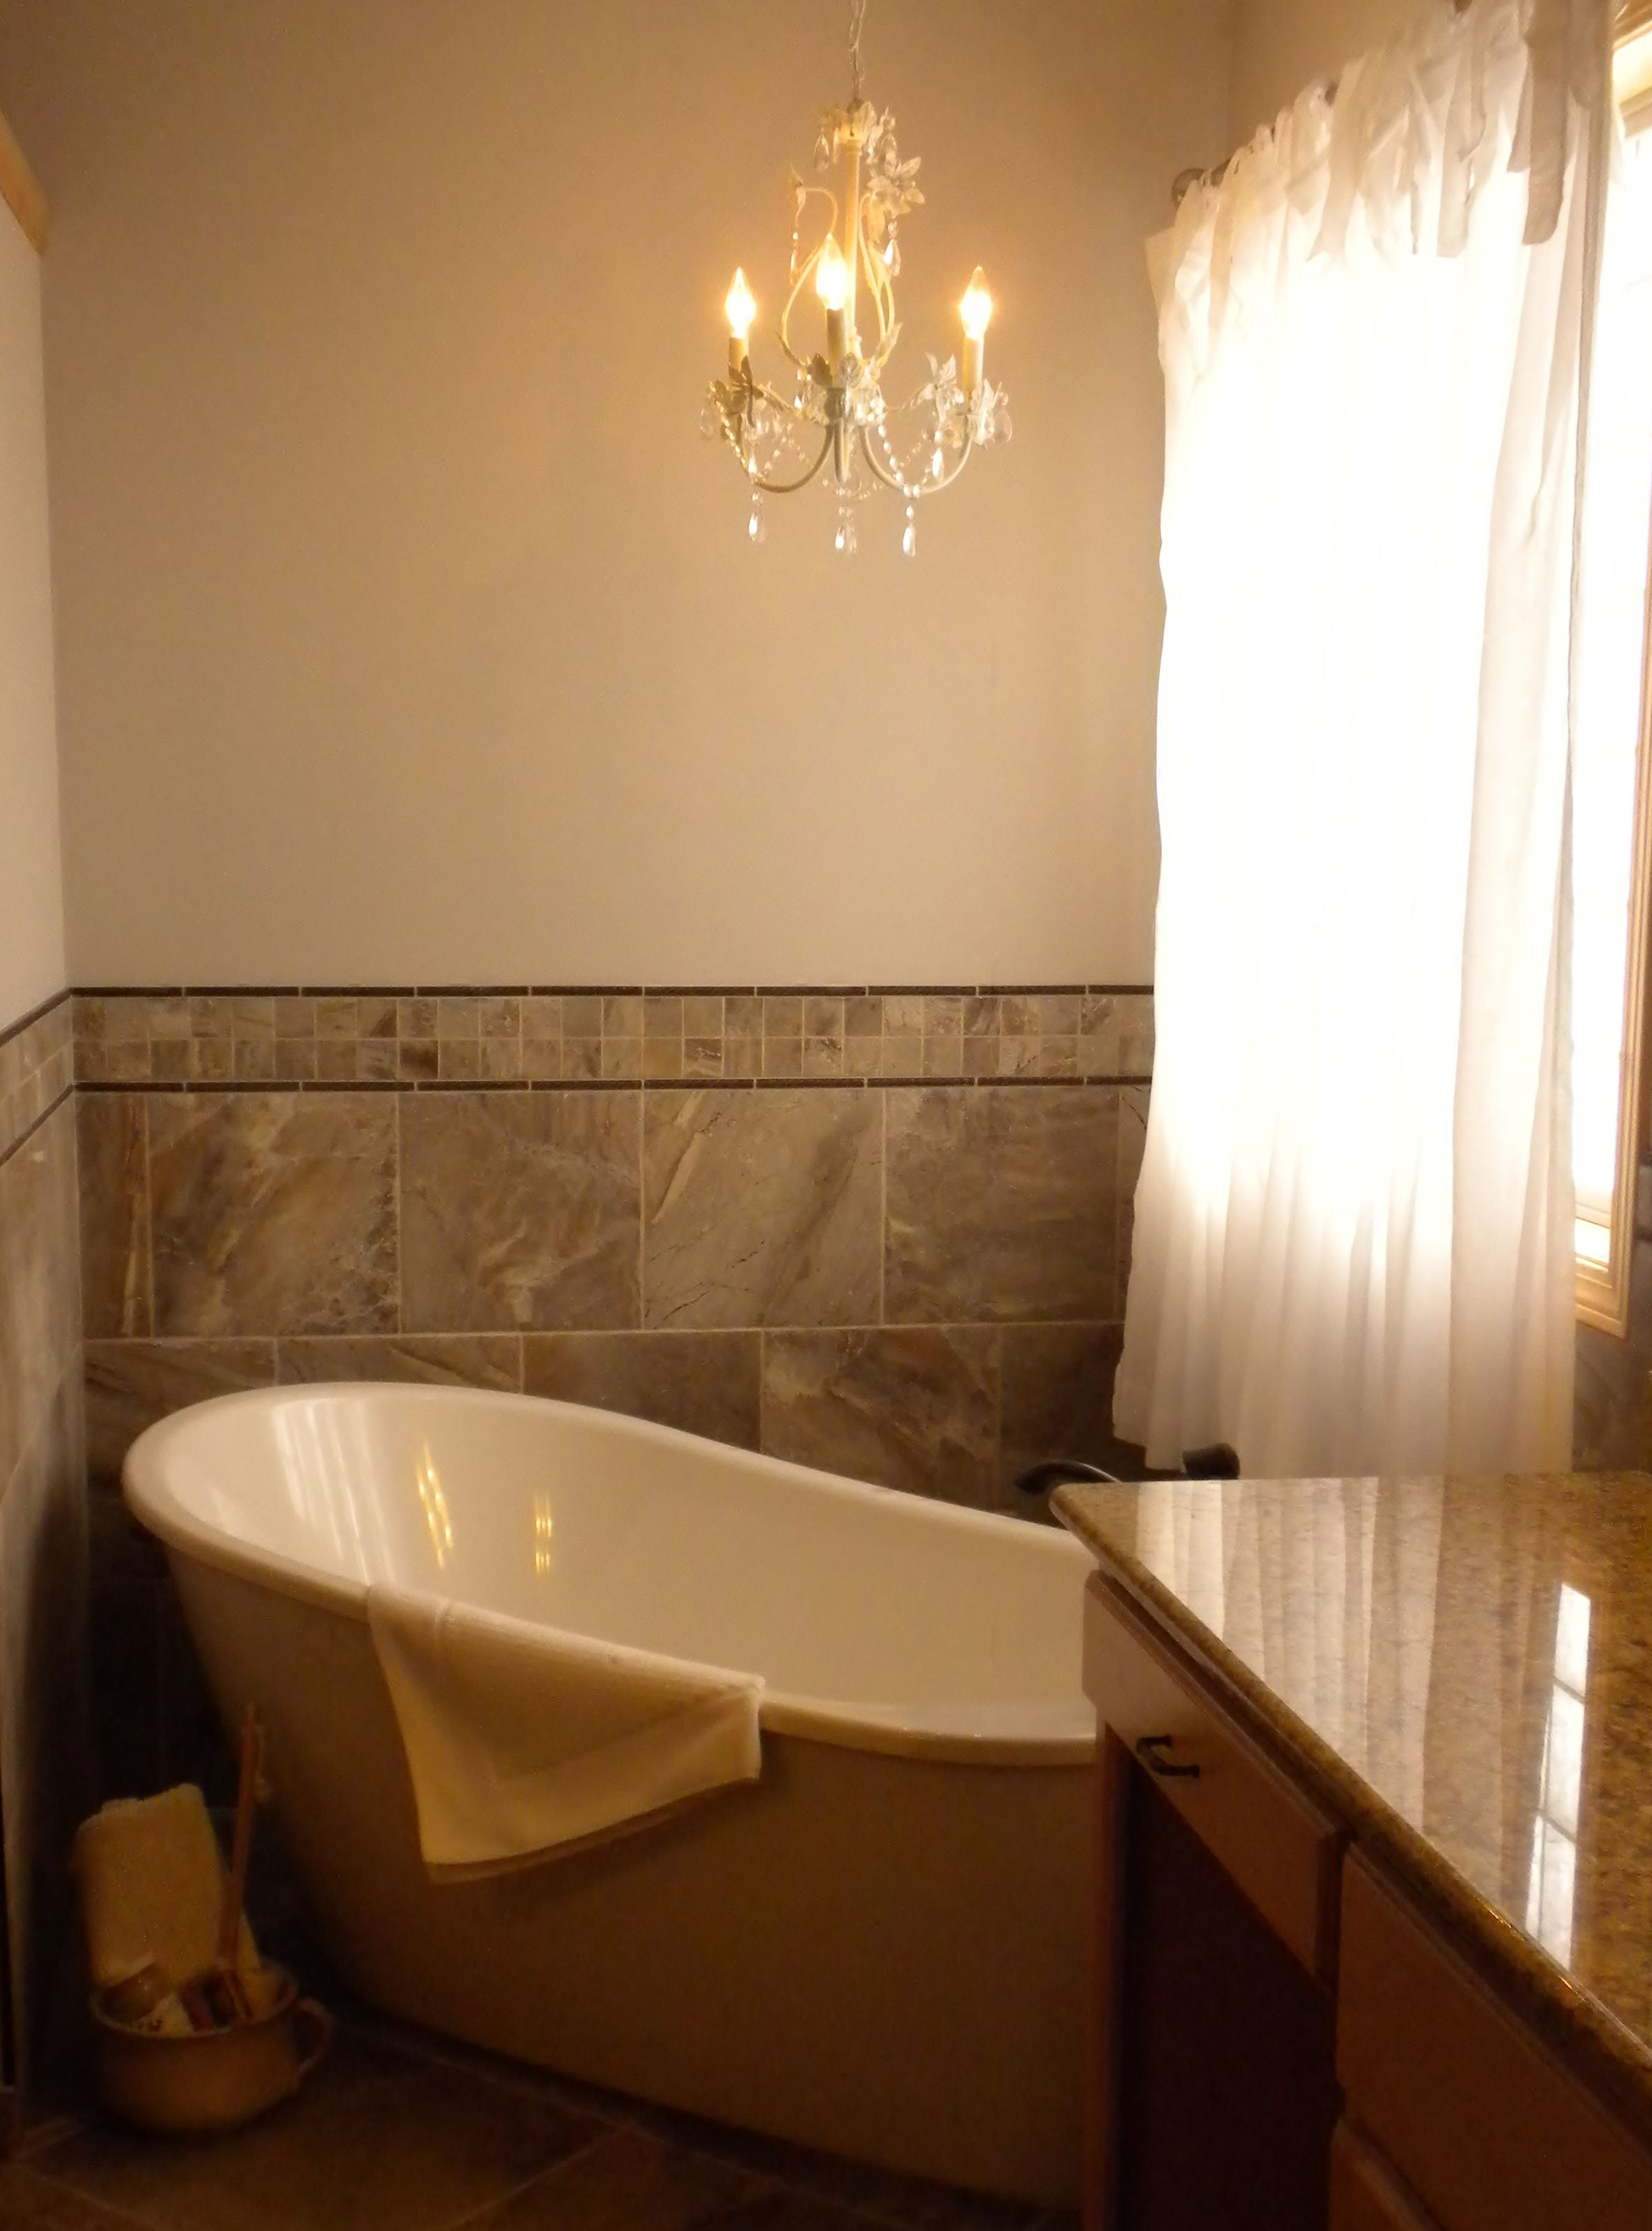 jetted fuson remodel mosaic biehl with tub pano guest brothers bubbles bathroom and